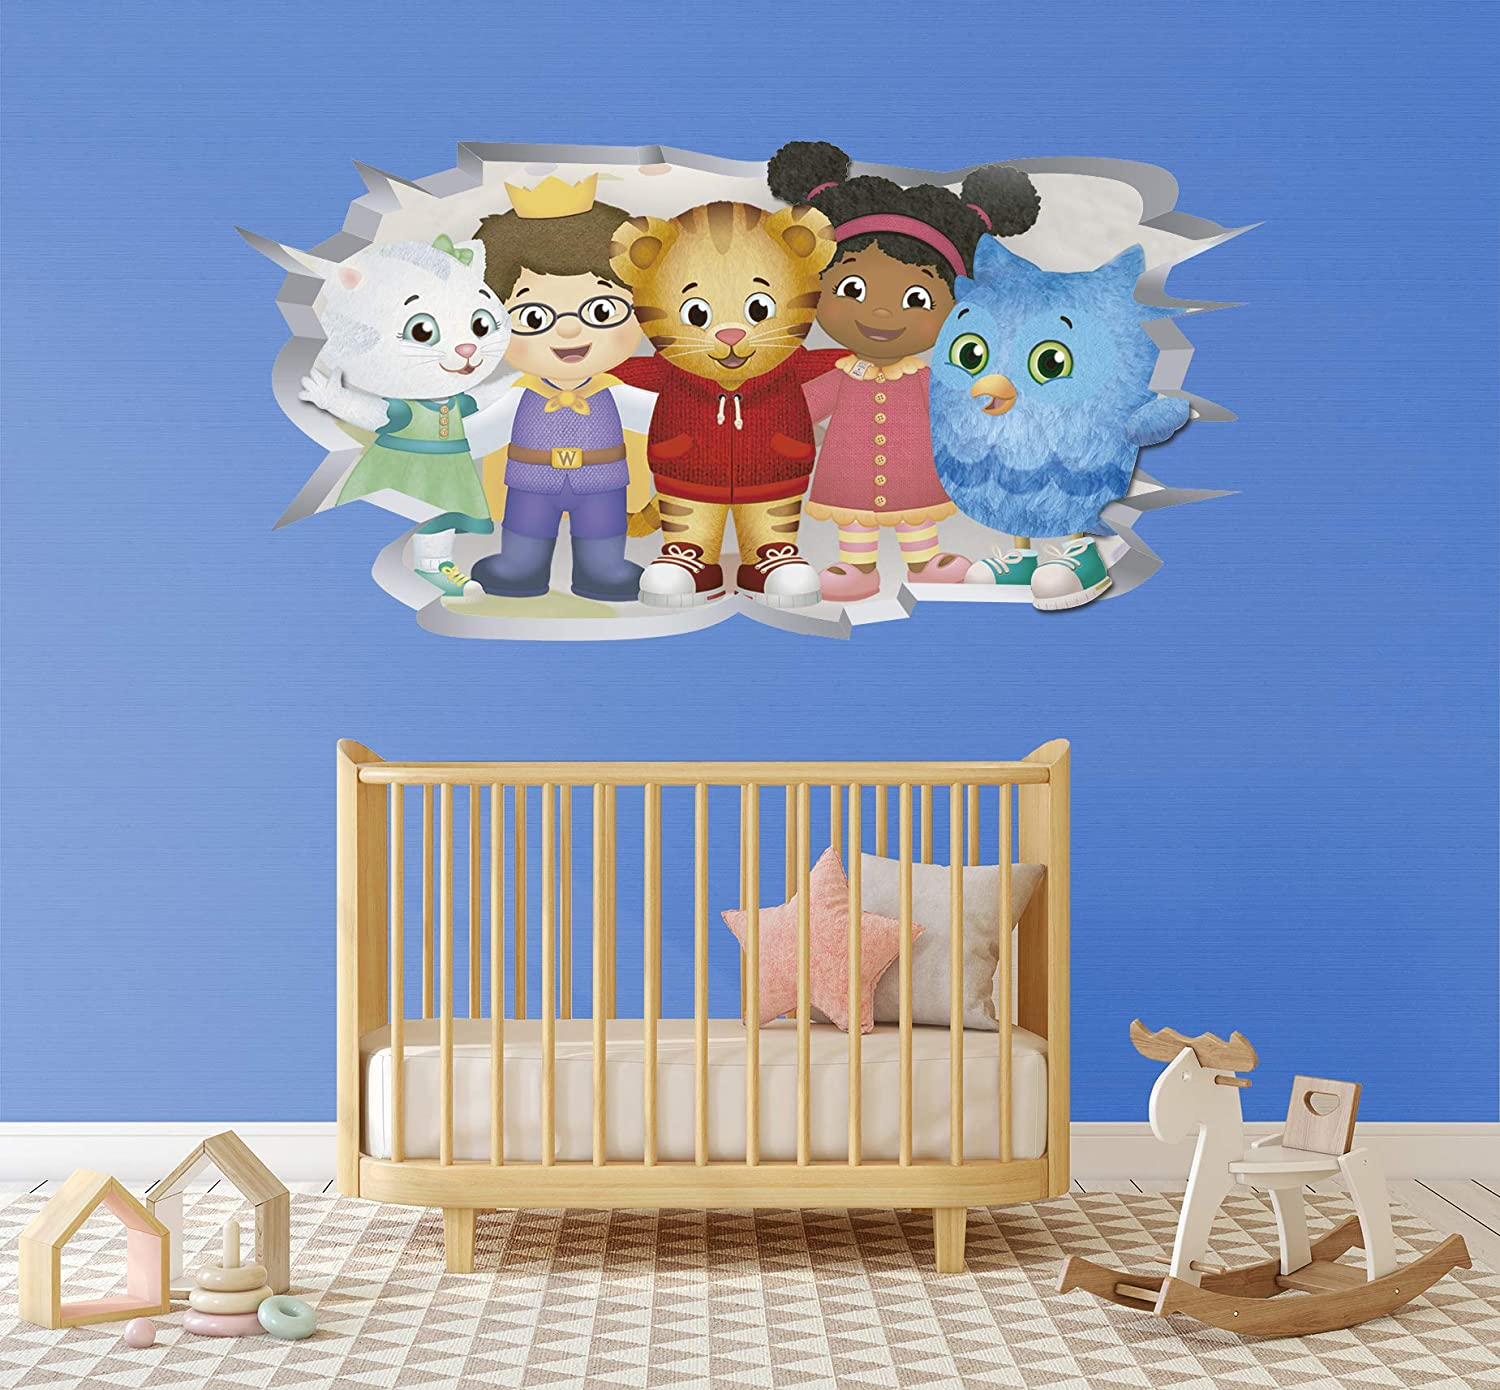 "Broken Wall 3D Effect - Daniel Tiger and his Friends - Removable Wall Decal Vinyl for Home Decoration (19"" x 10"")"